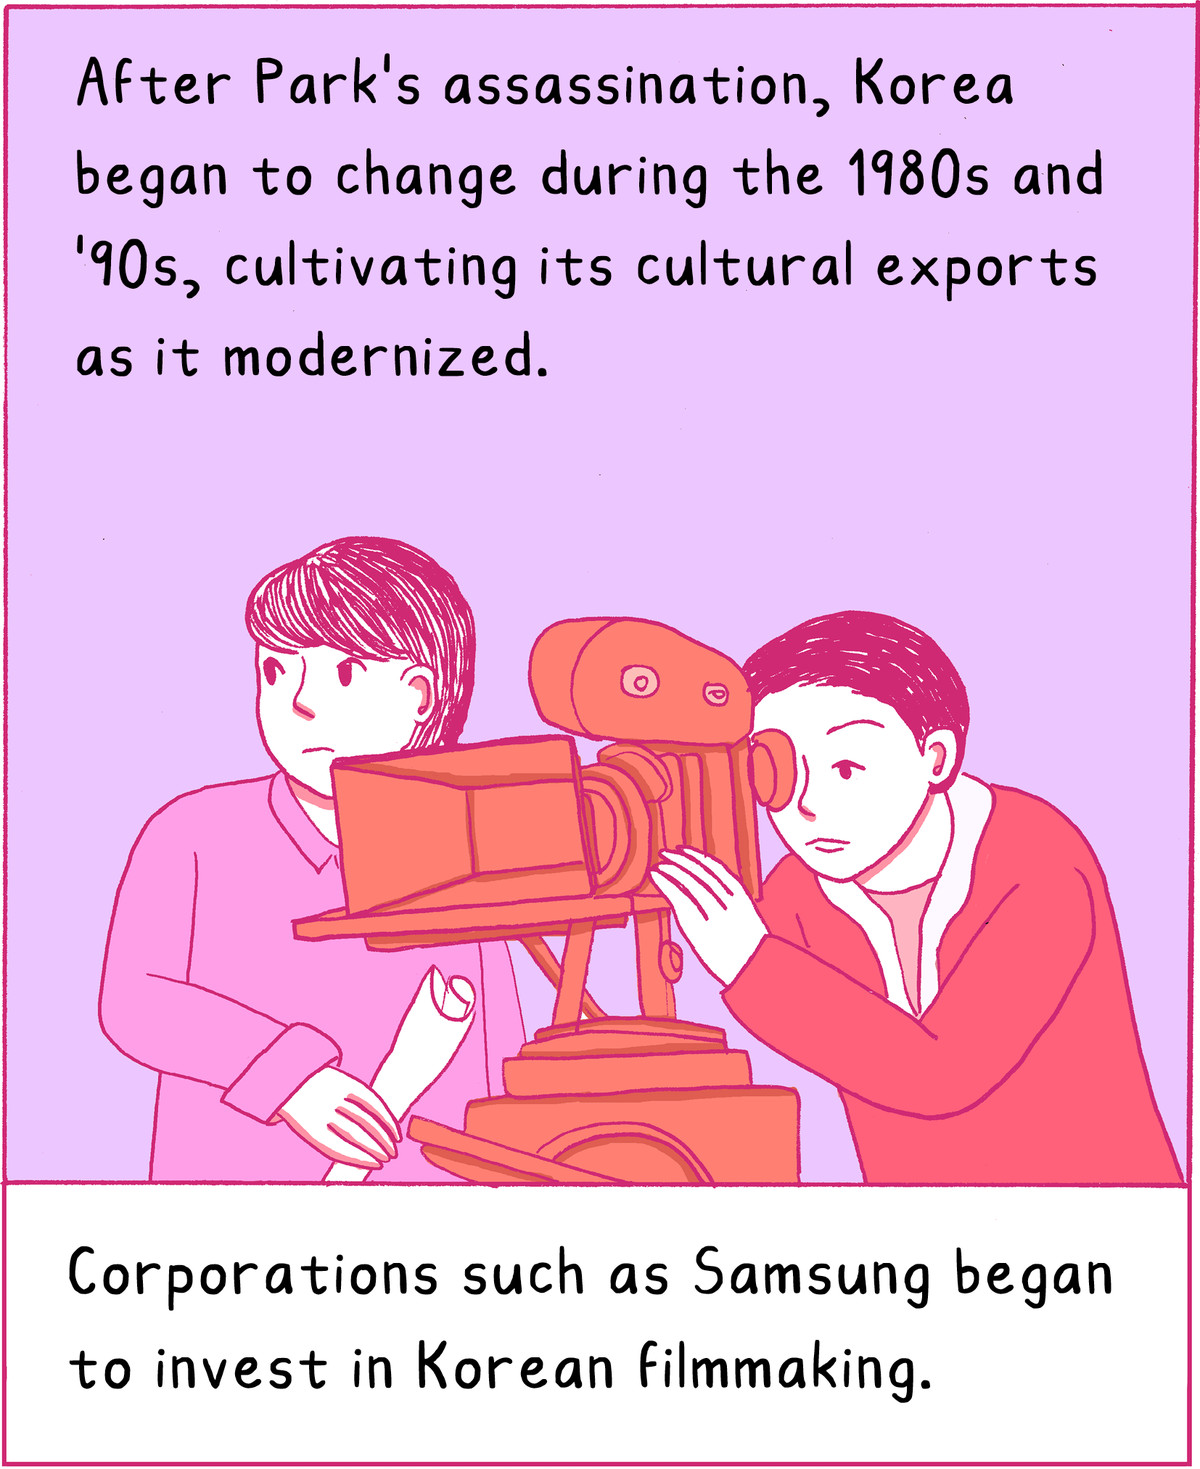 After his assassination, Korea began to change during the 1980s and 90s, and with its modernization, to cultivate its cultural exports. Corporations like Samsung began to invest in Korean filmmaking.